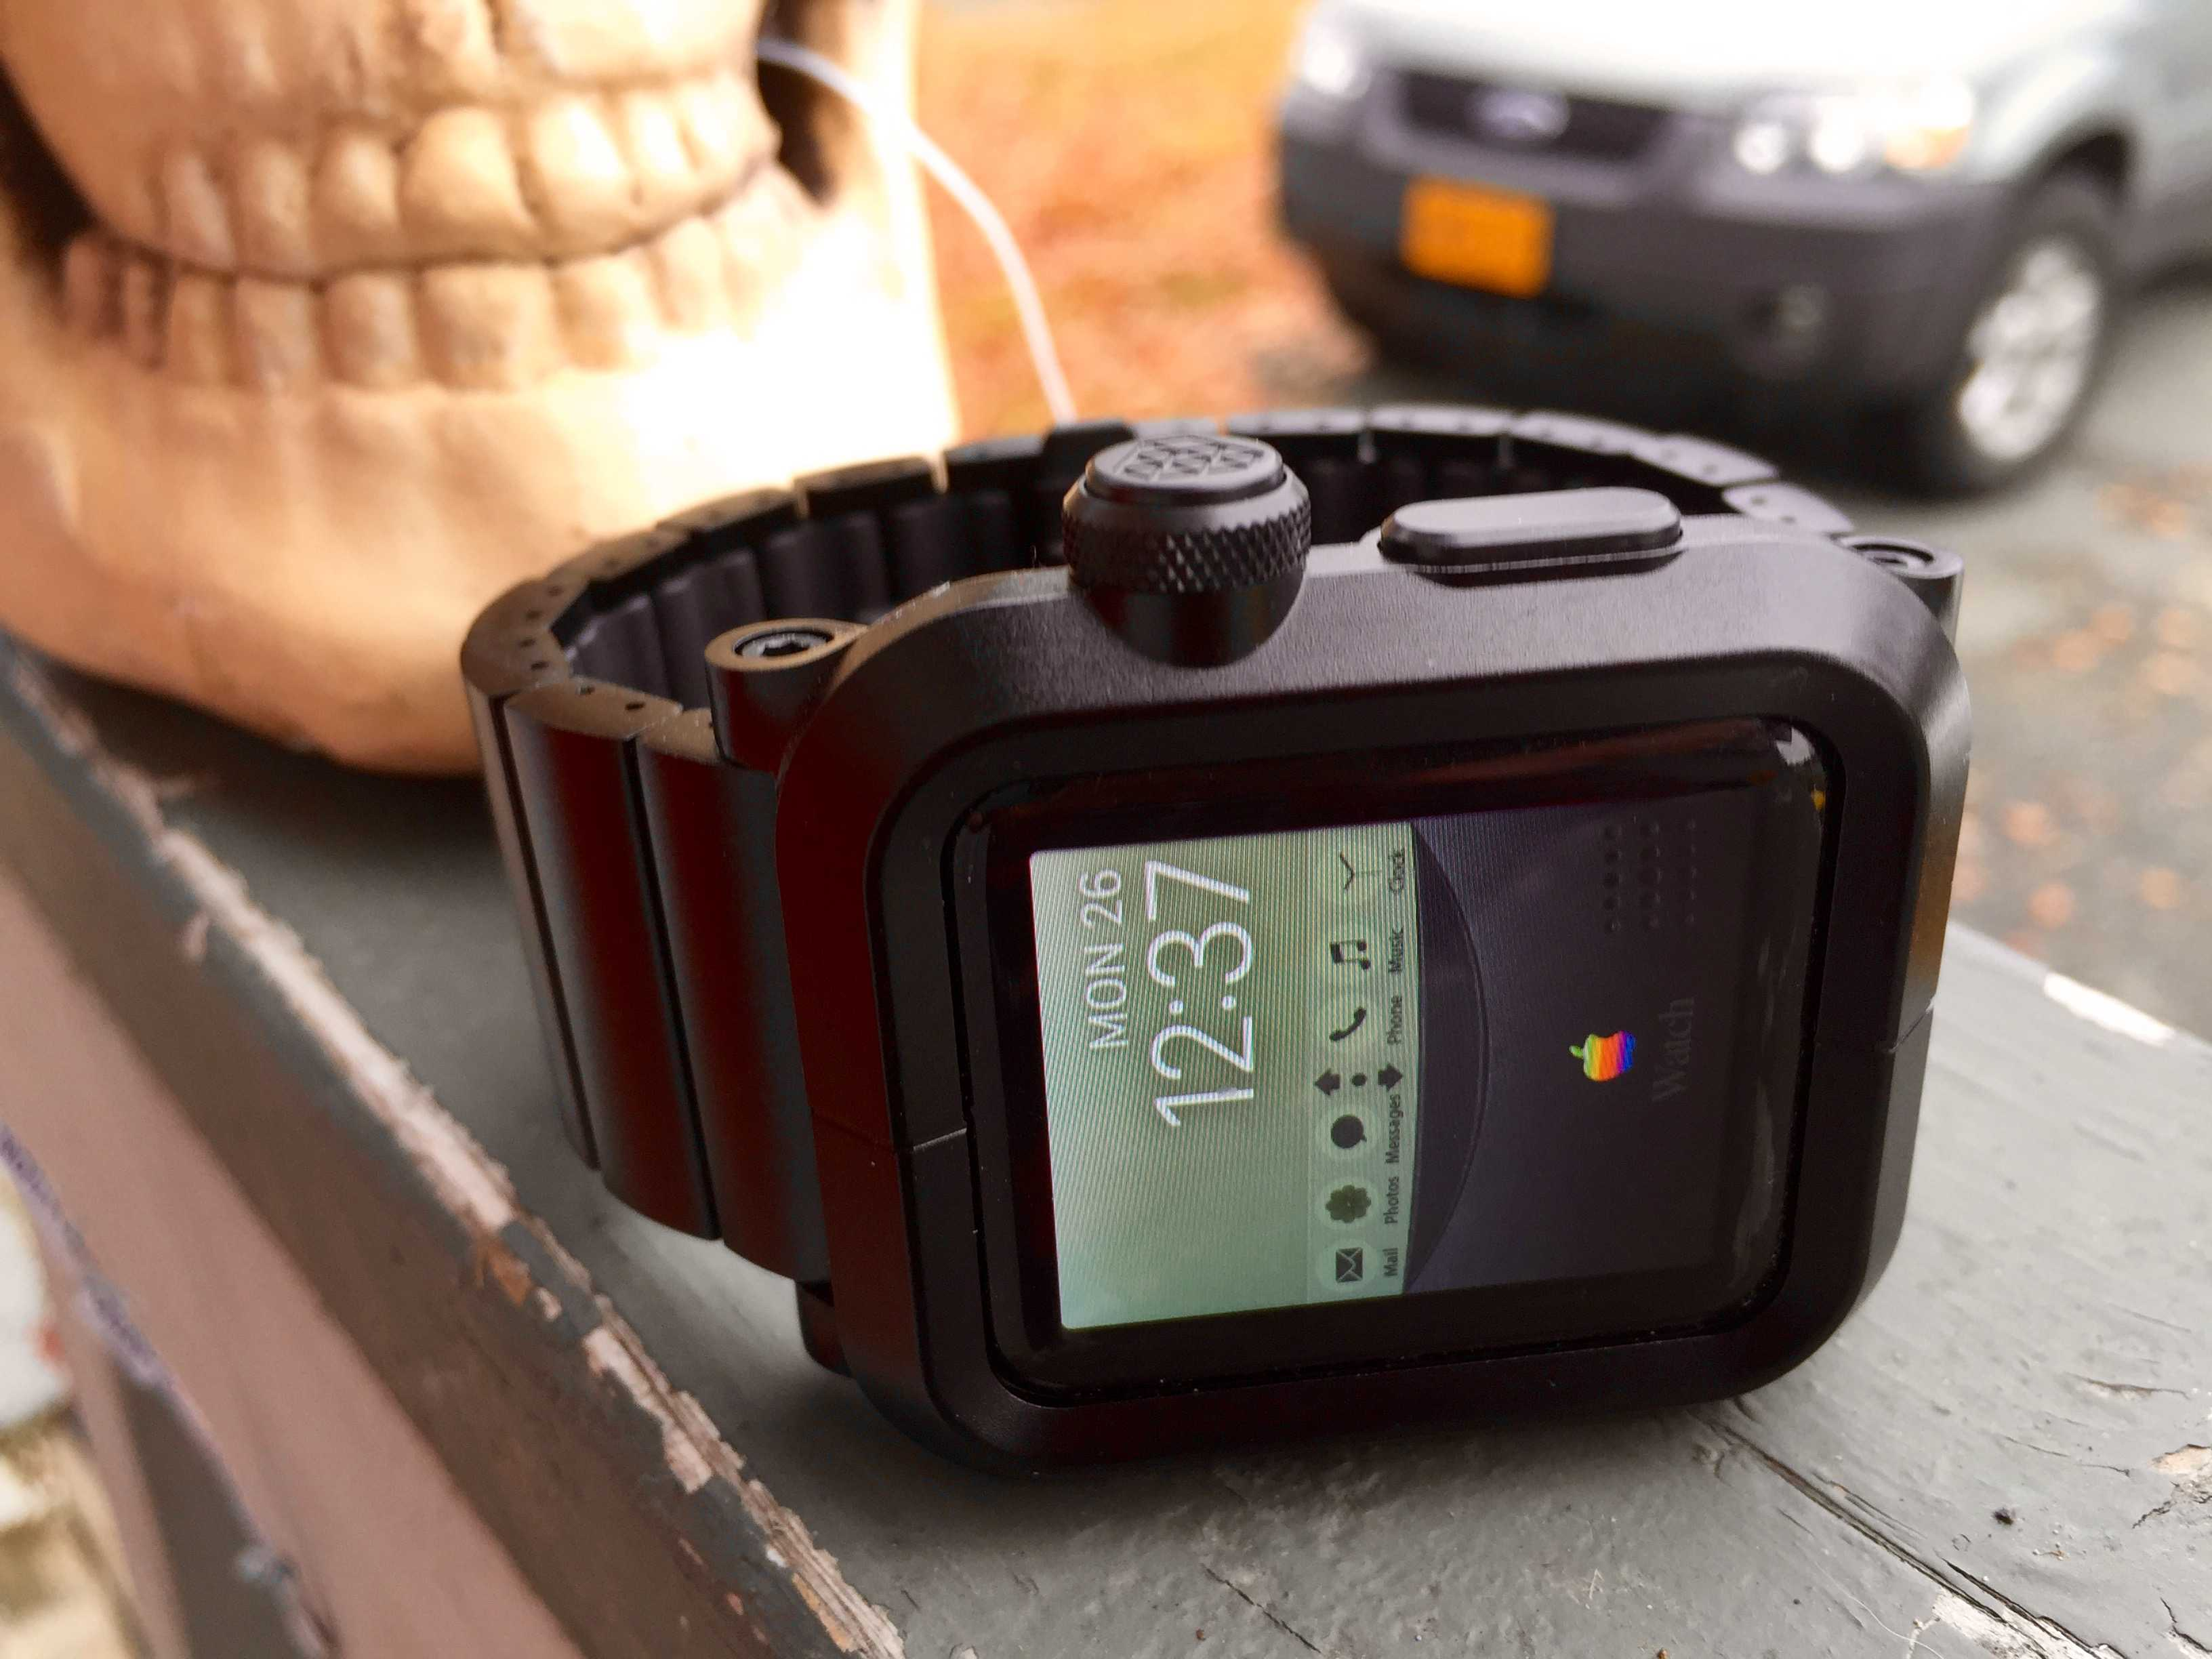 Put your Apple Watch inside an Epik case and it'll be protected (and super-sized.)